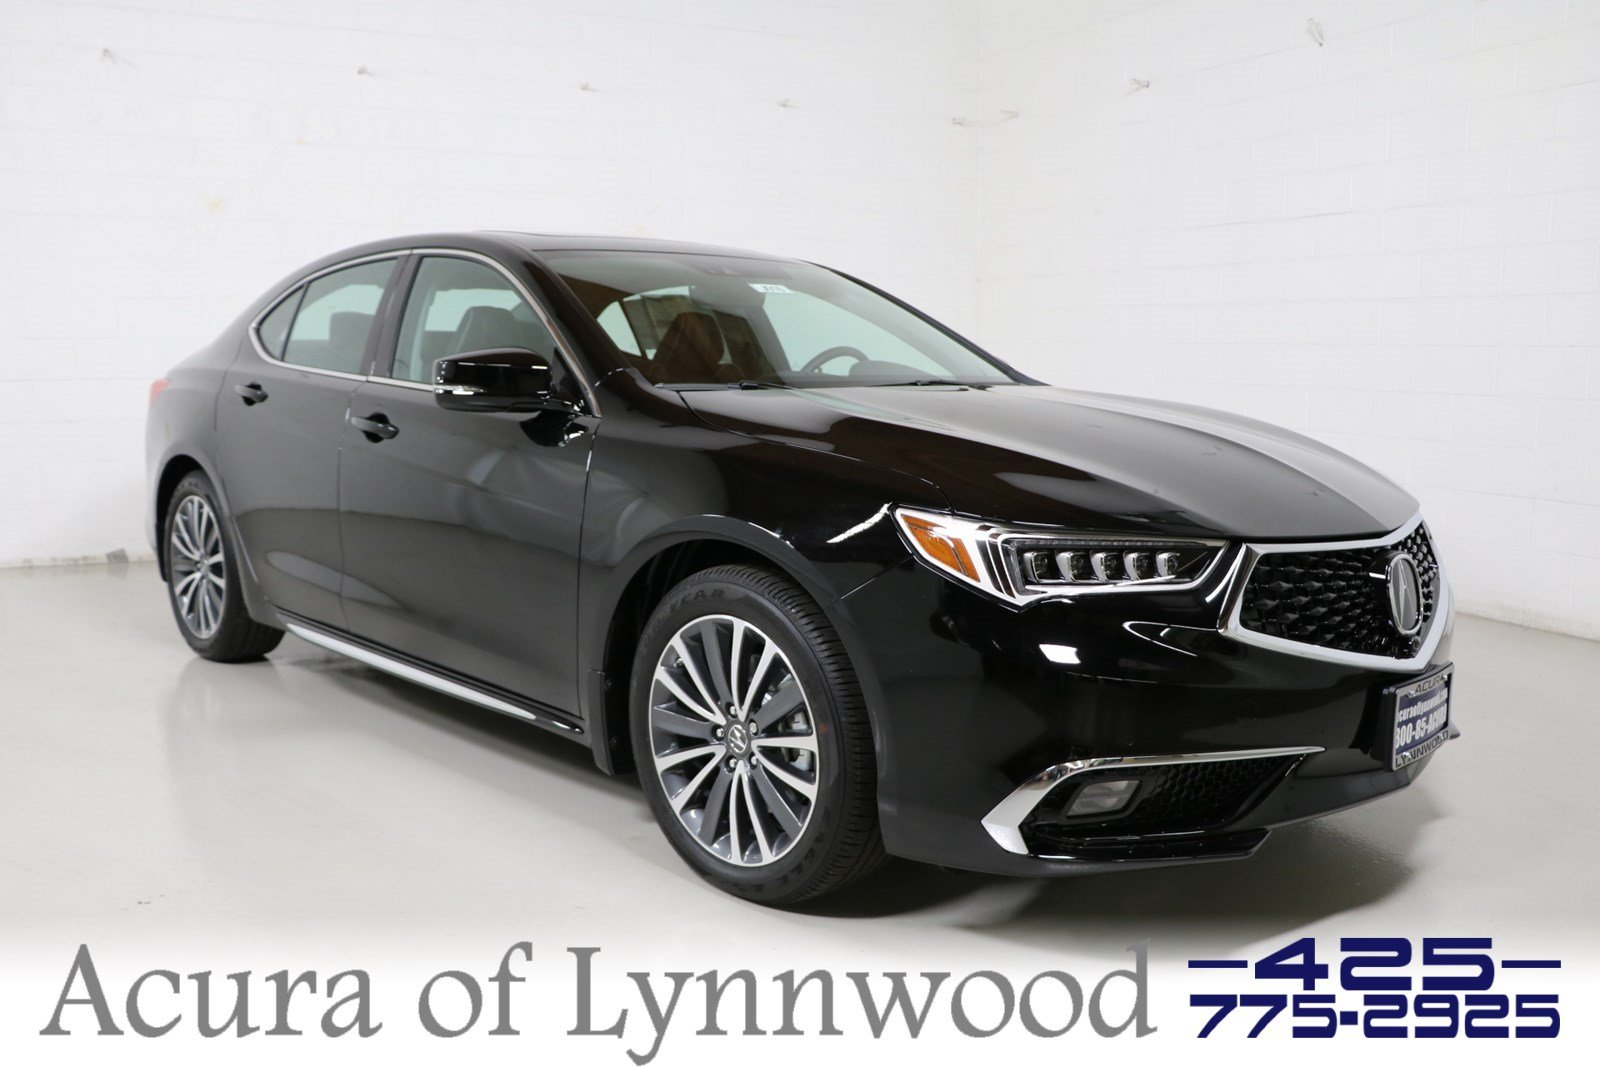 2018 acura awd. contemporary awd new 2018 acura tlx 35 v6 9at shawd with advance package on acura awd